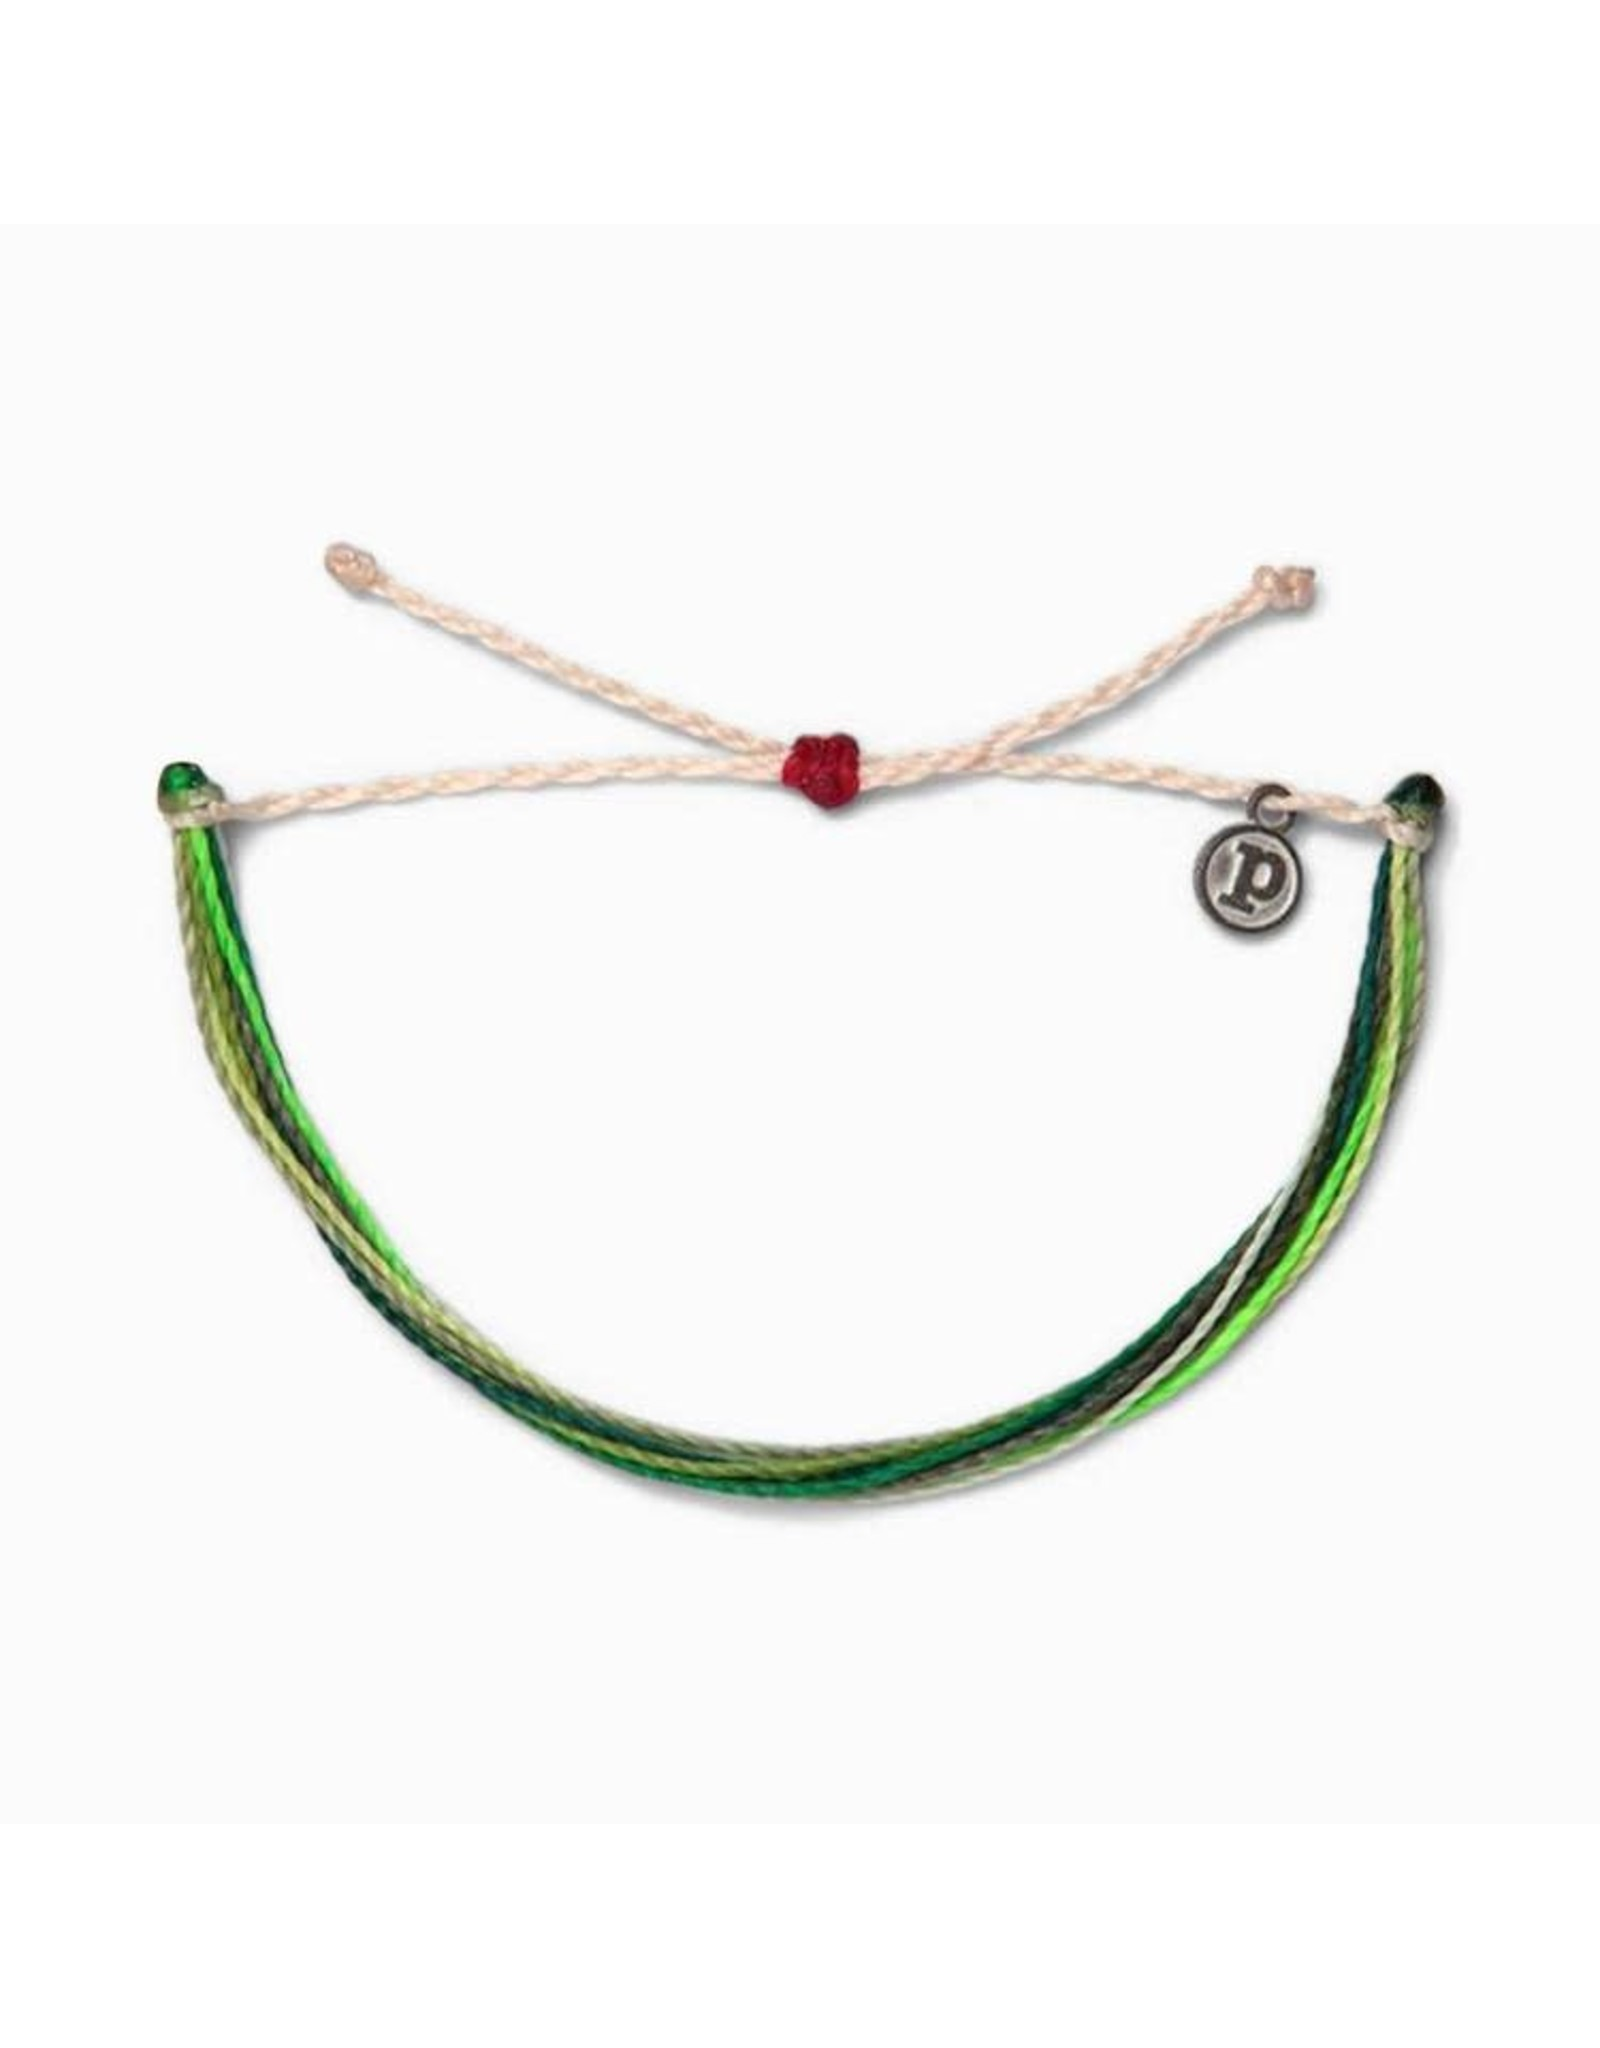 Puravida Bracelets Charity Original Save The Sea Turtles